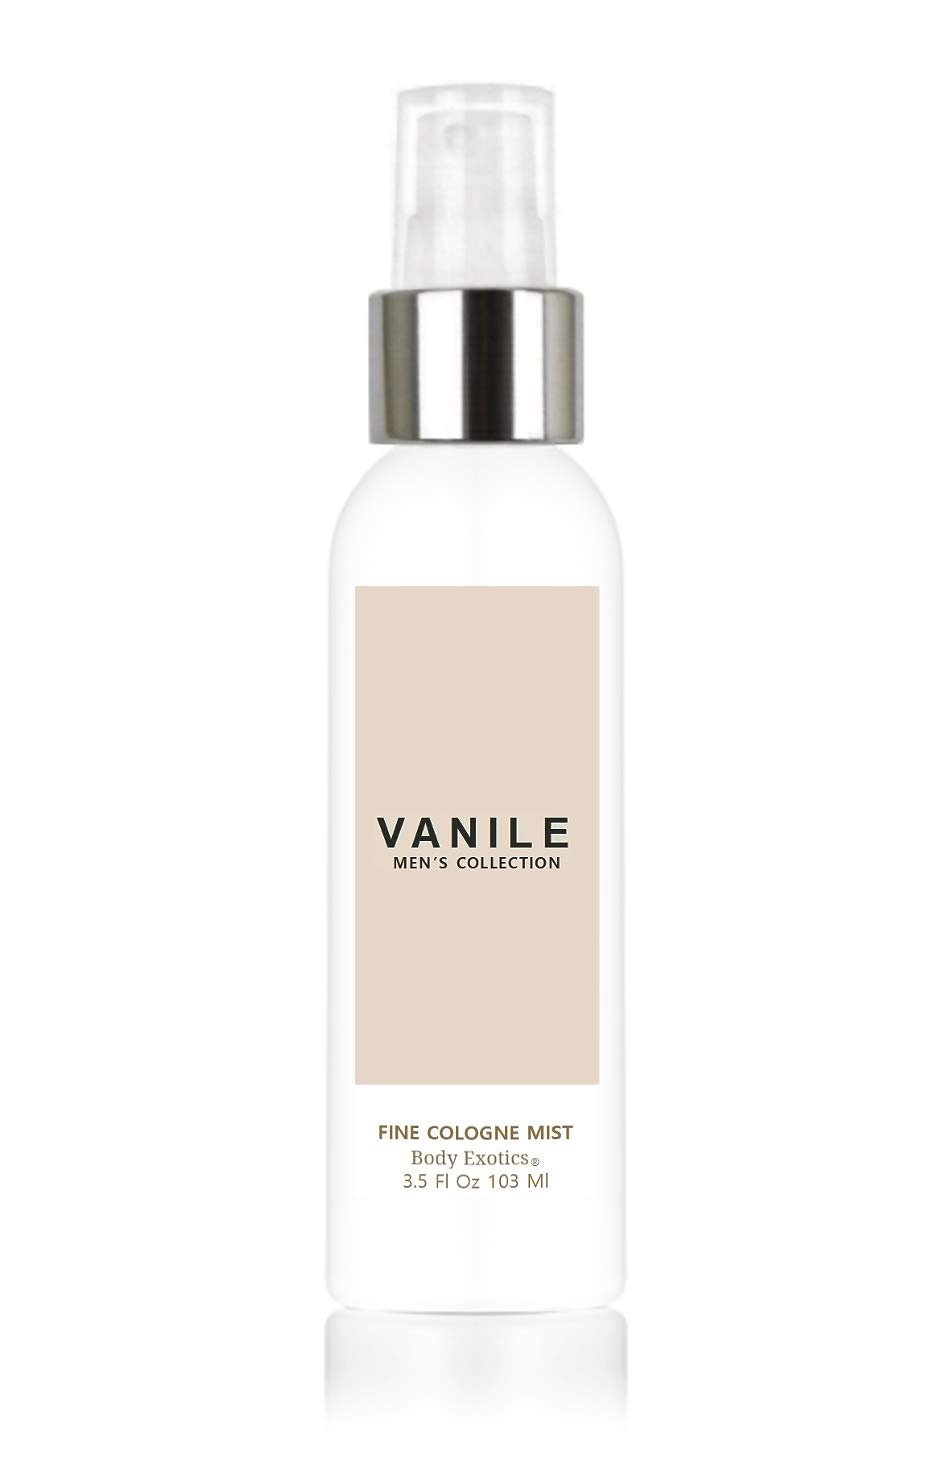 Vanile Men's Collection Fragrance Cologne Mist by Body Exotics 3.5 Fl Oz 103 Ml - a Hypnotic Blend of Dark Vanilla Bean, Black Amber, Sandalwood and Exotic Spices